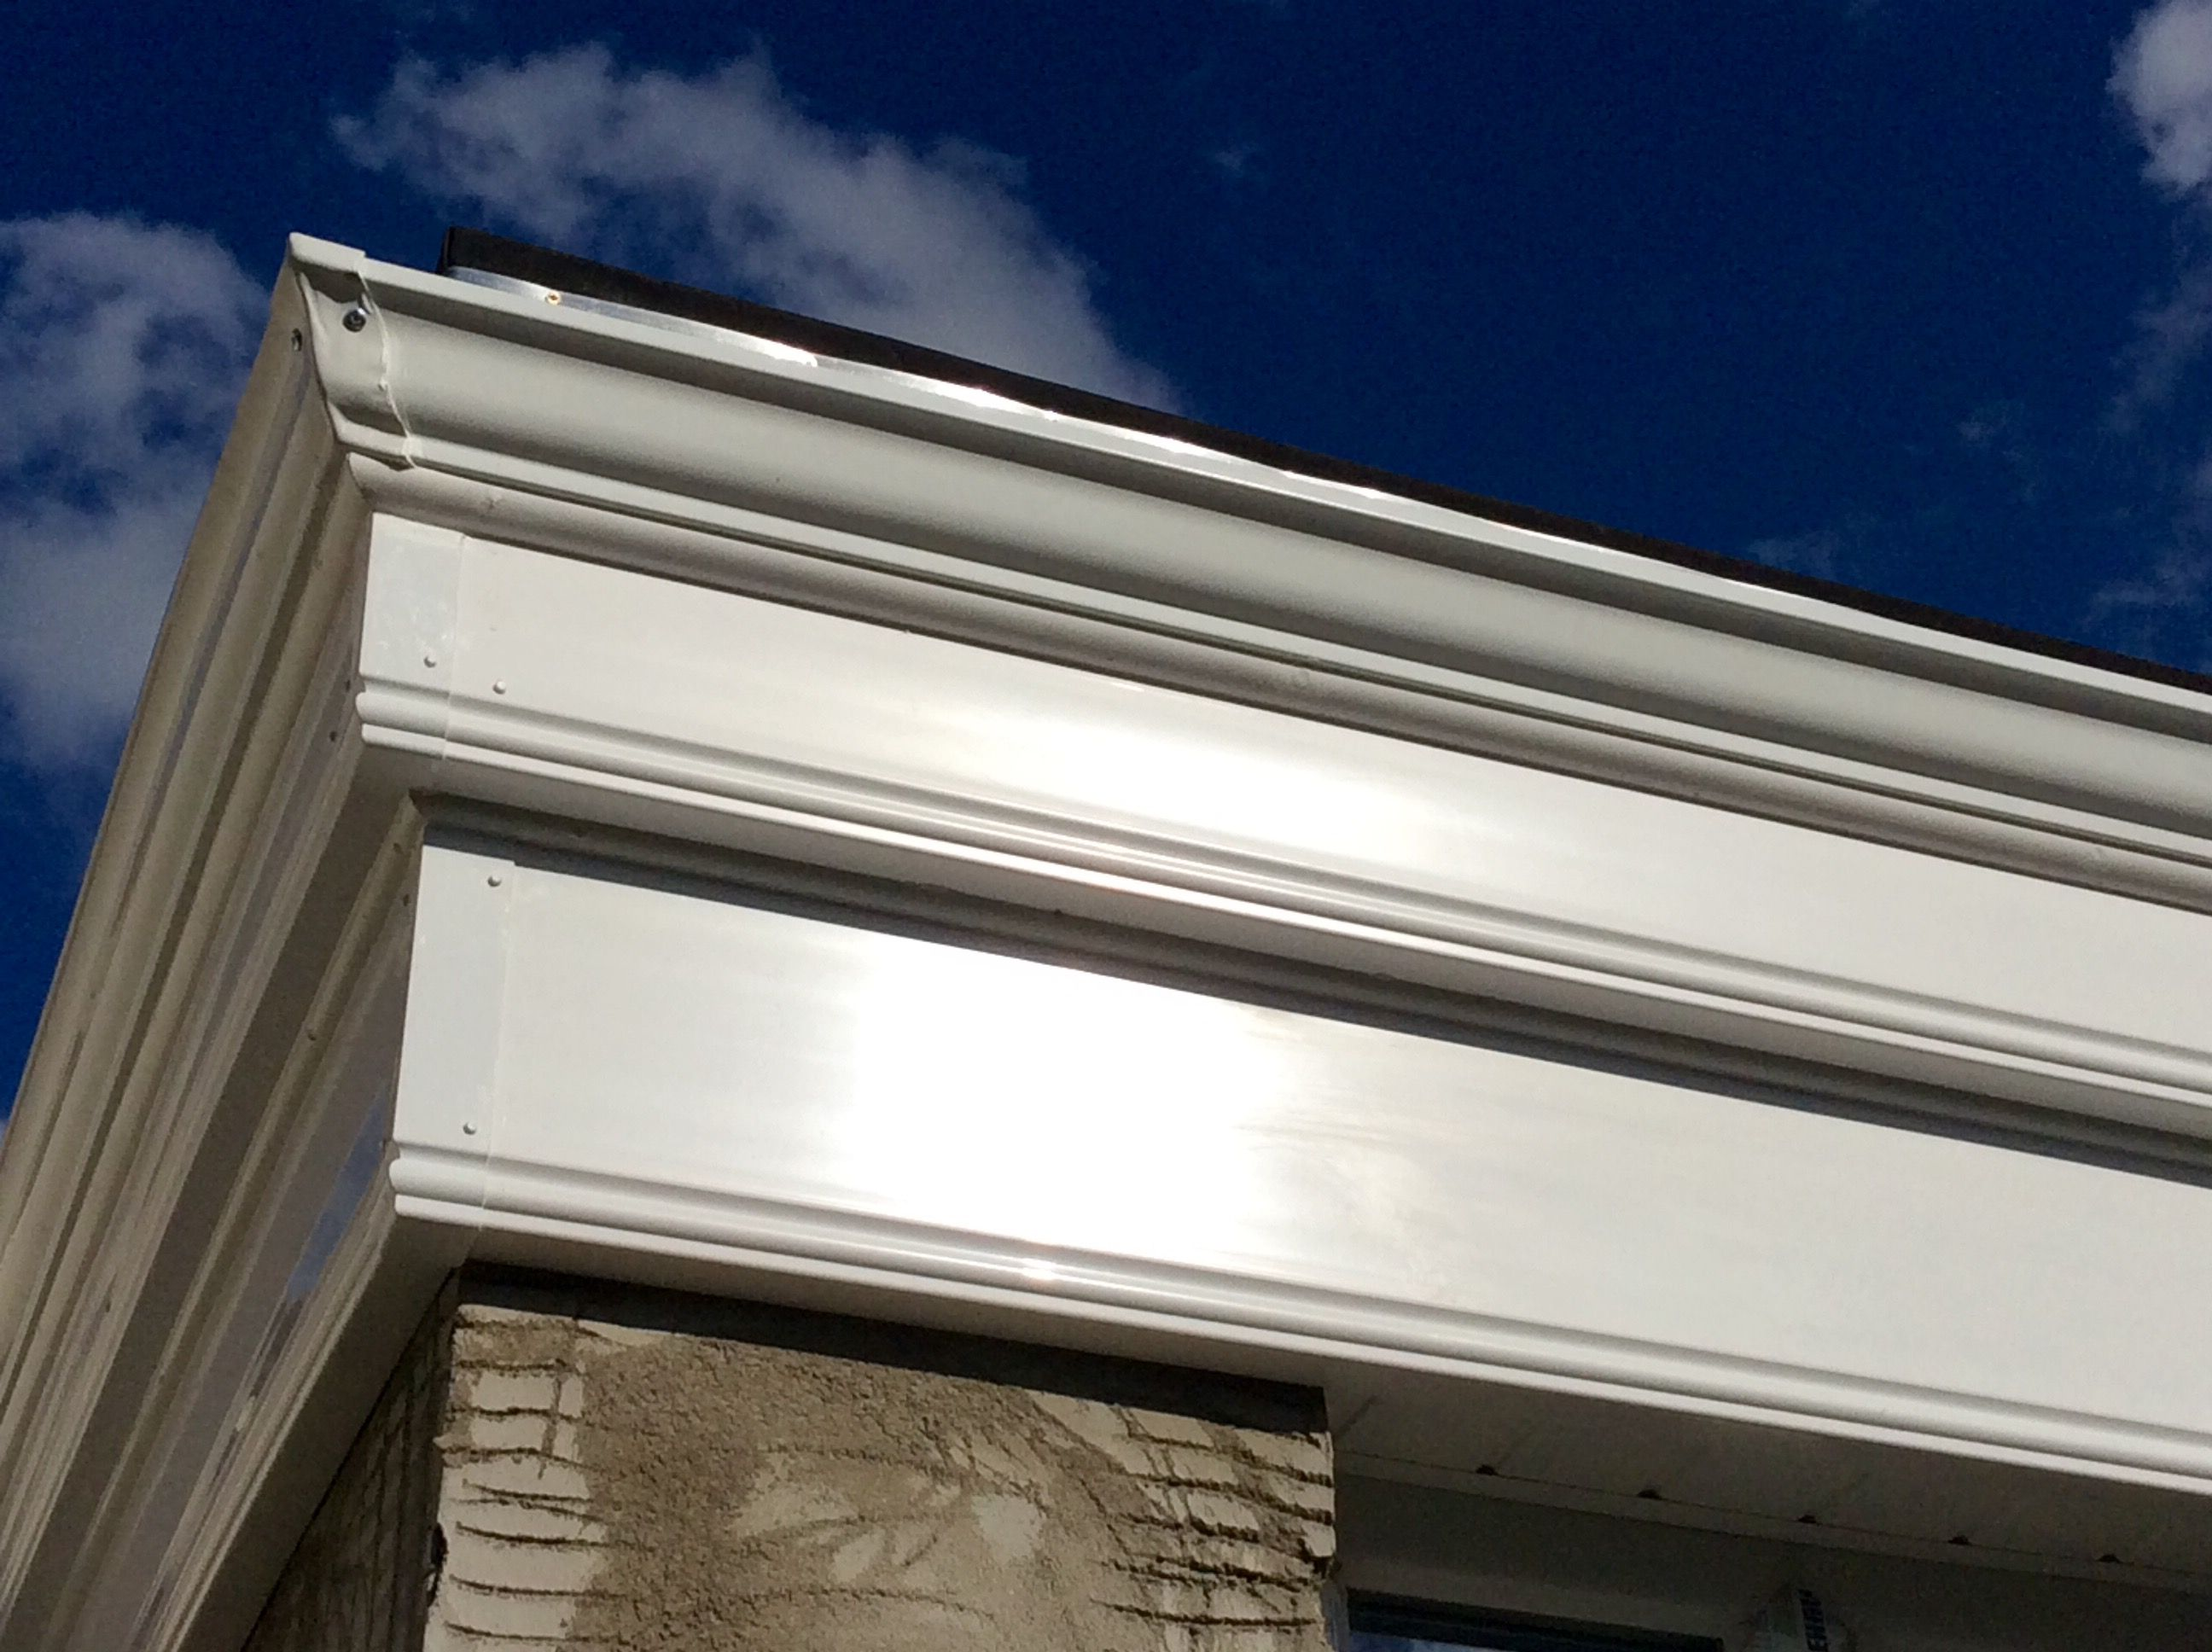 Fascia Board Seamless Gutters With Pvc Fascia Boards On A Orangery Style